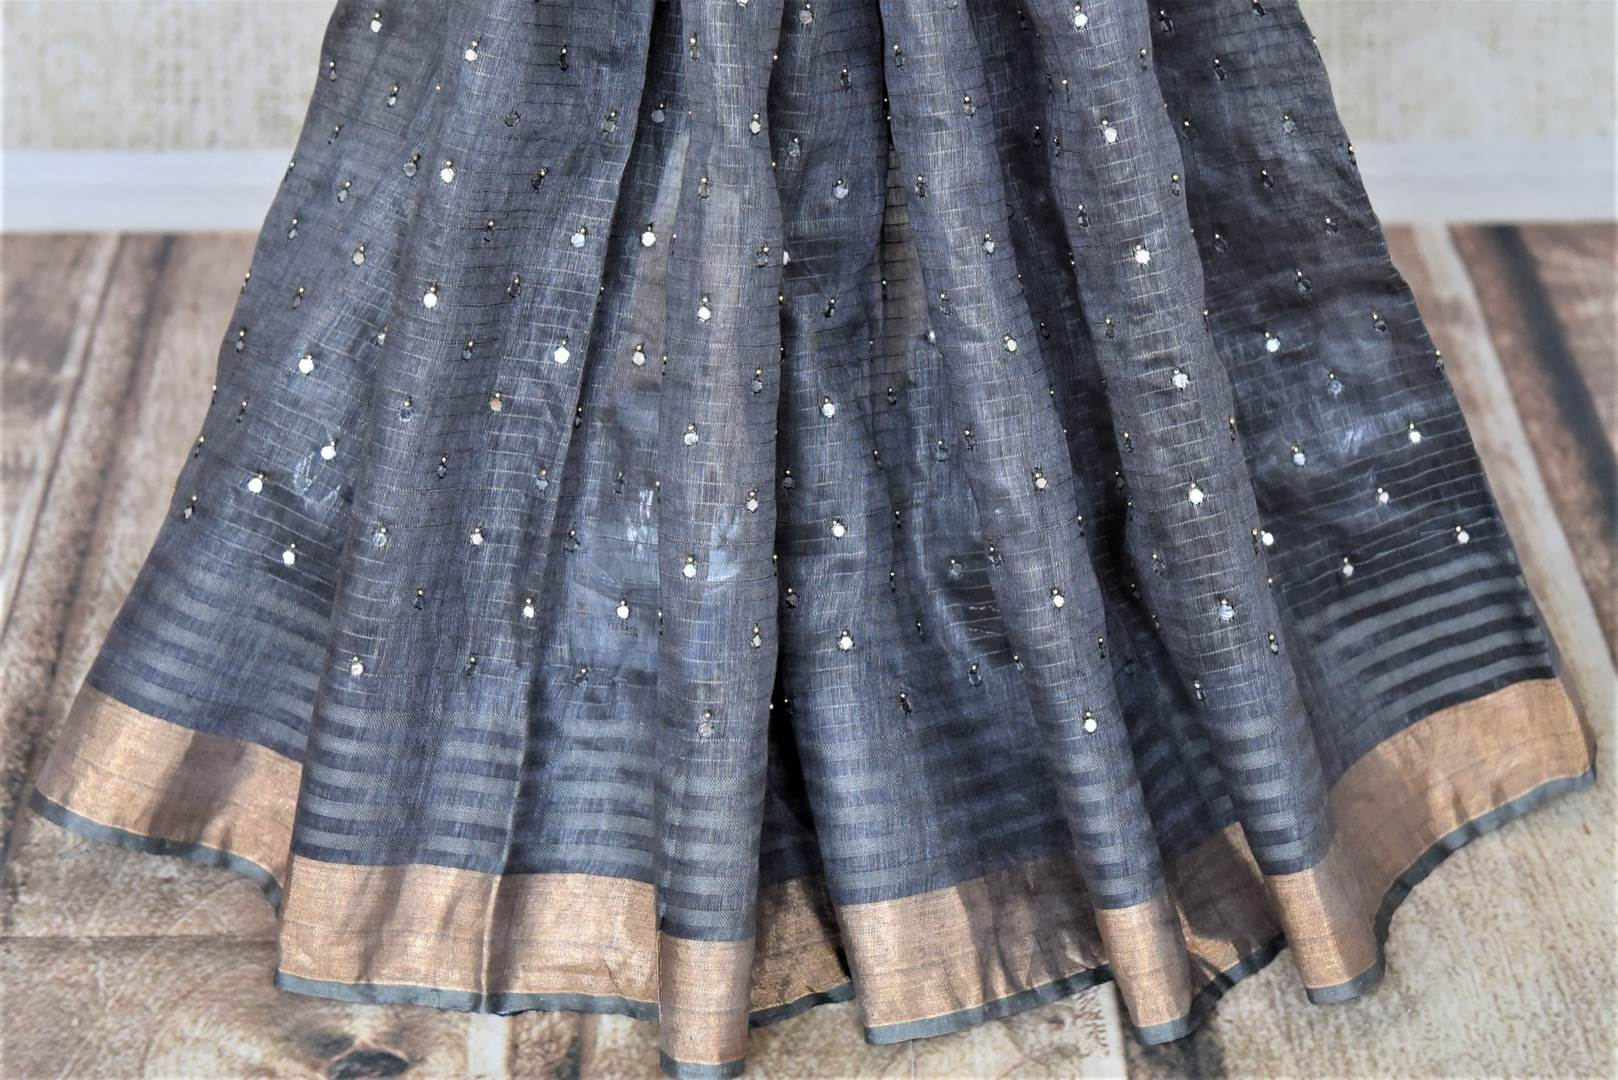 Shop lovely dark grey chanderi silk sari online in USA with mirror work and zari border. Keep it light yet festive on special occasions with beautiful chanderi silk sarees from Pure Elegance Indian fashion store in USA.-pleats